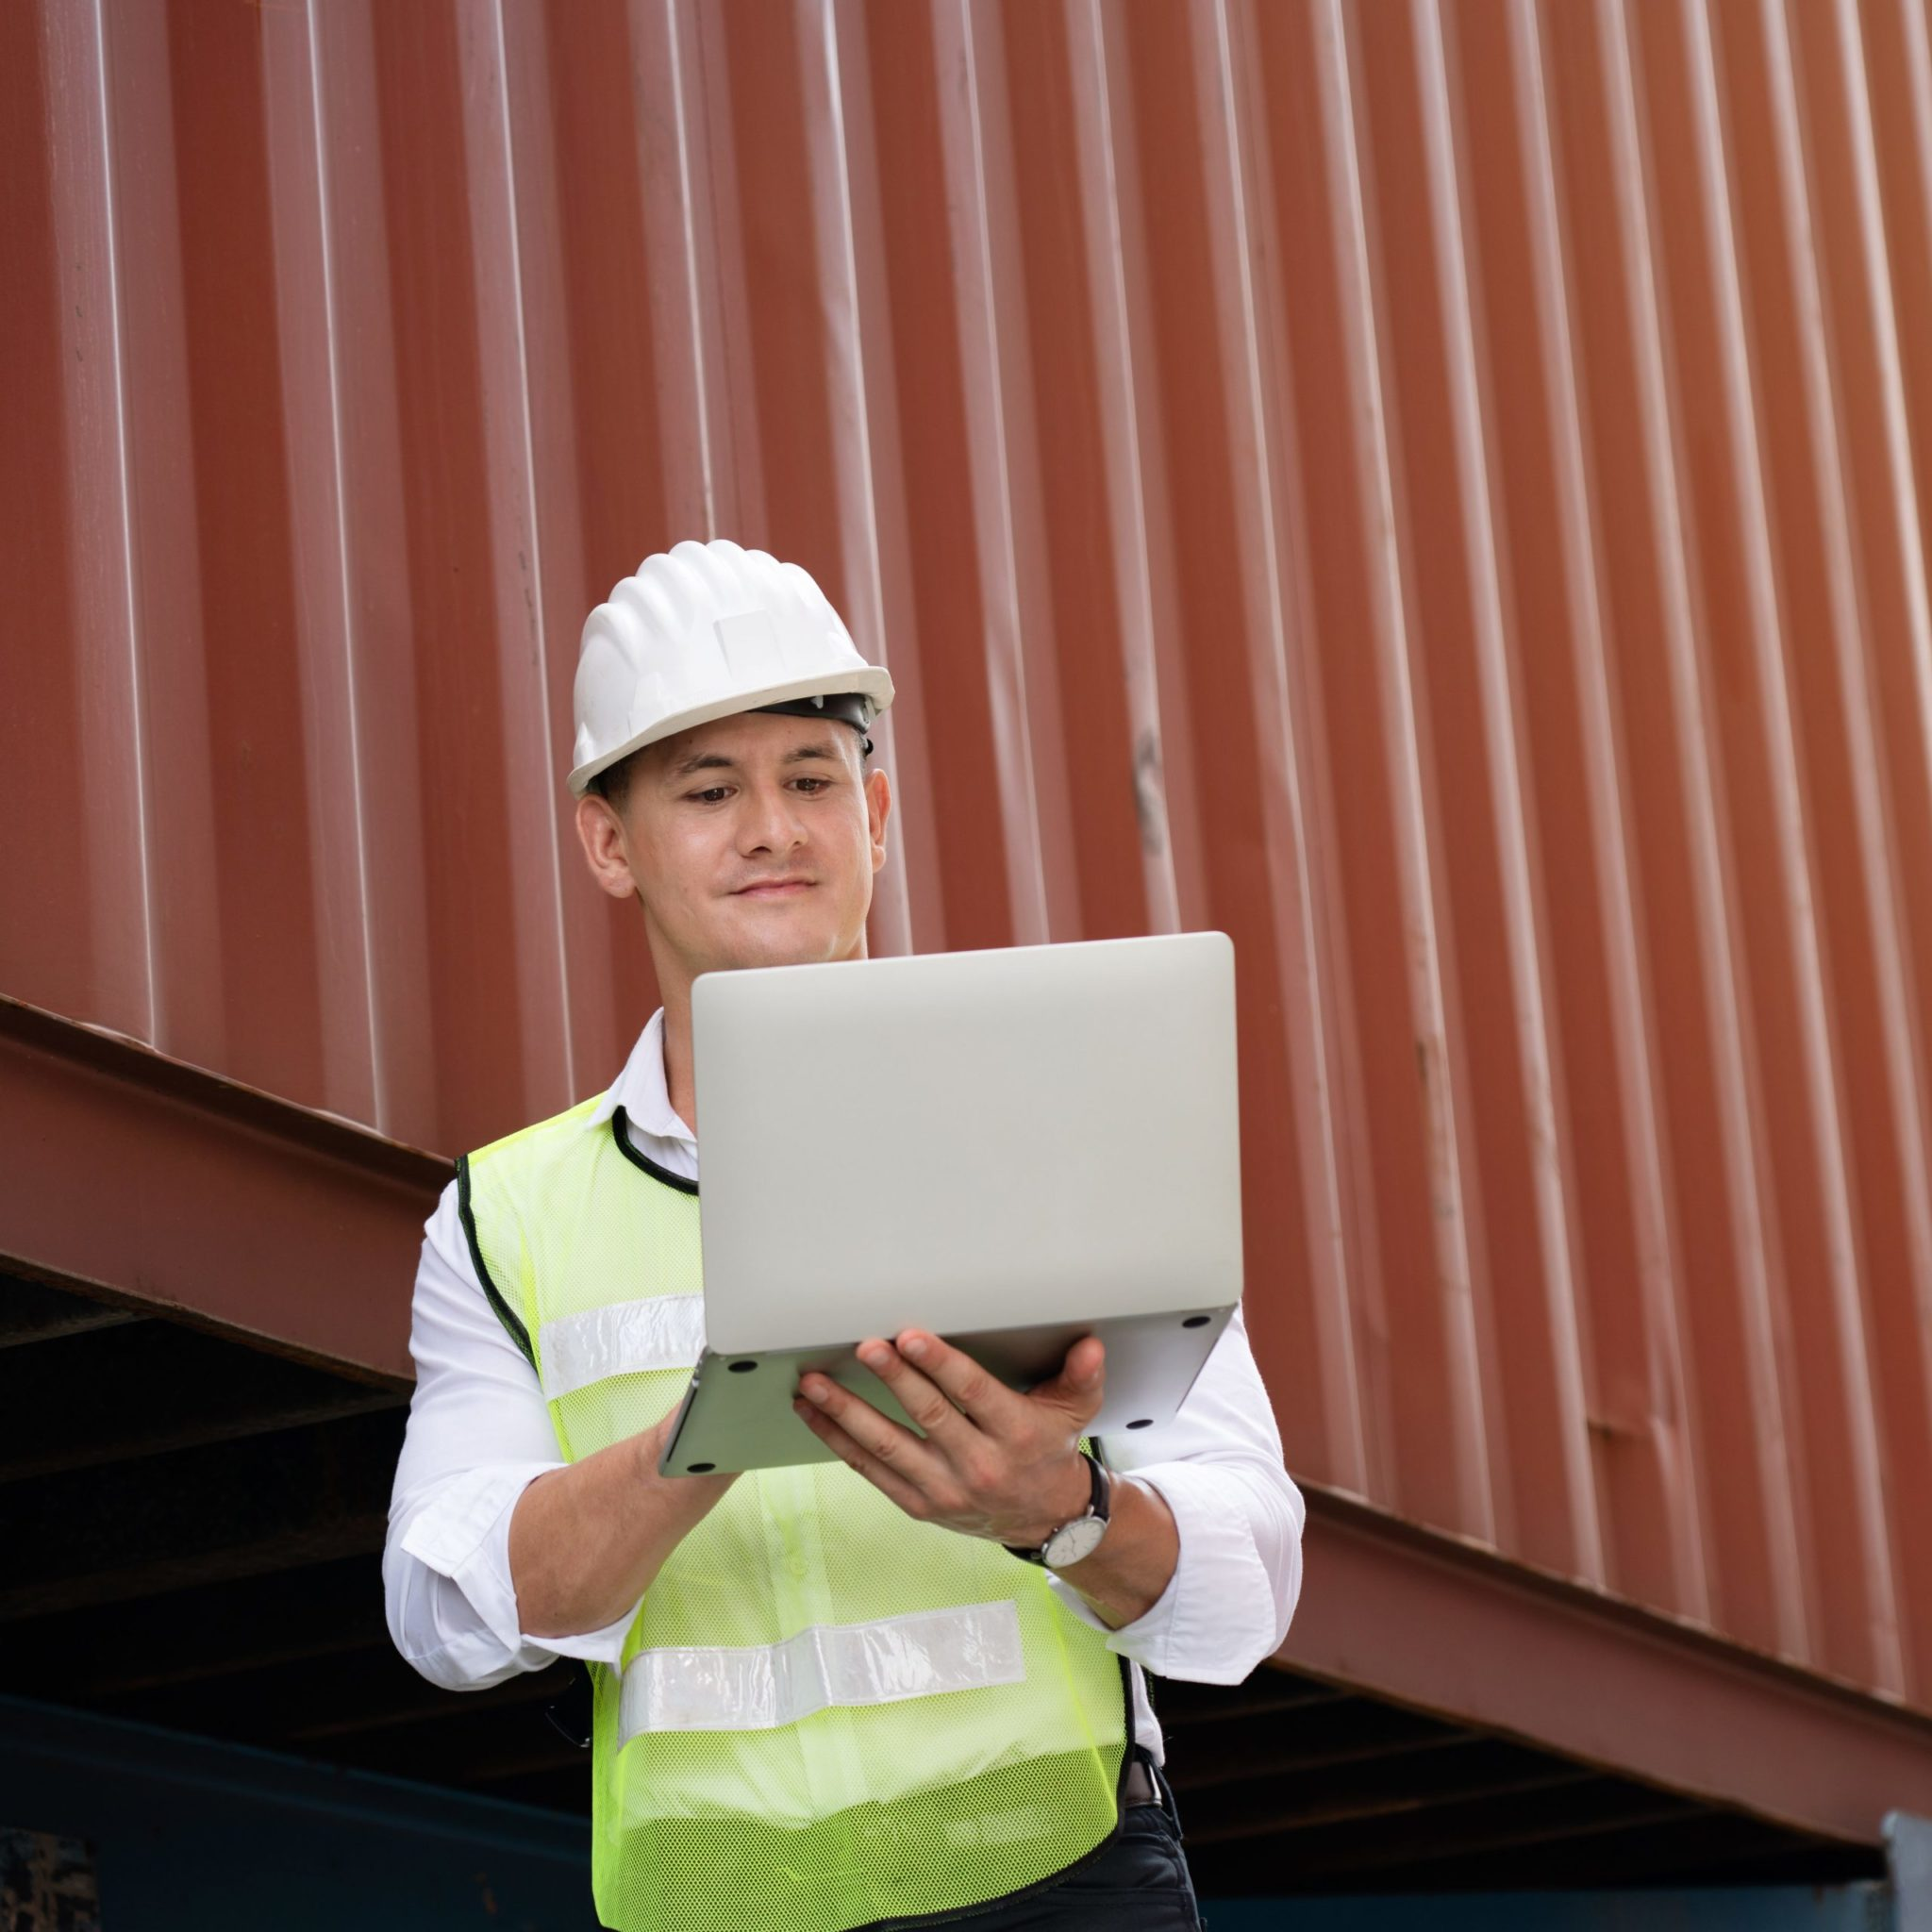 Male engineer in hardhat and reflective vest holding laptop computer and working on it.